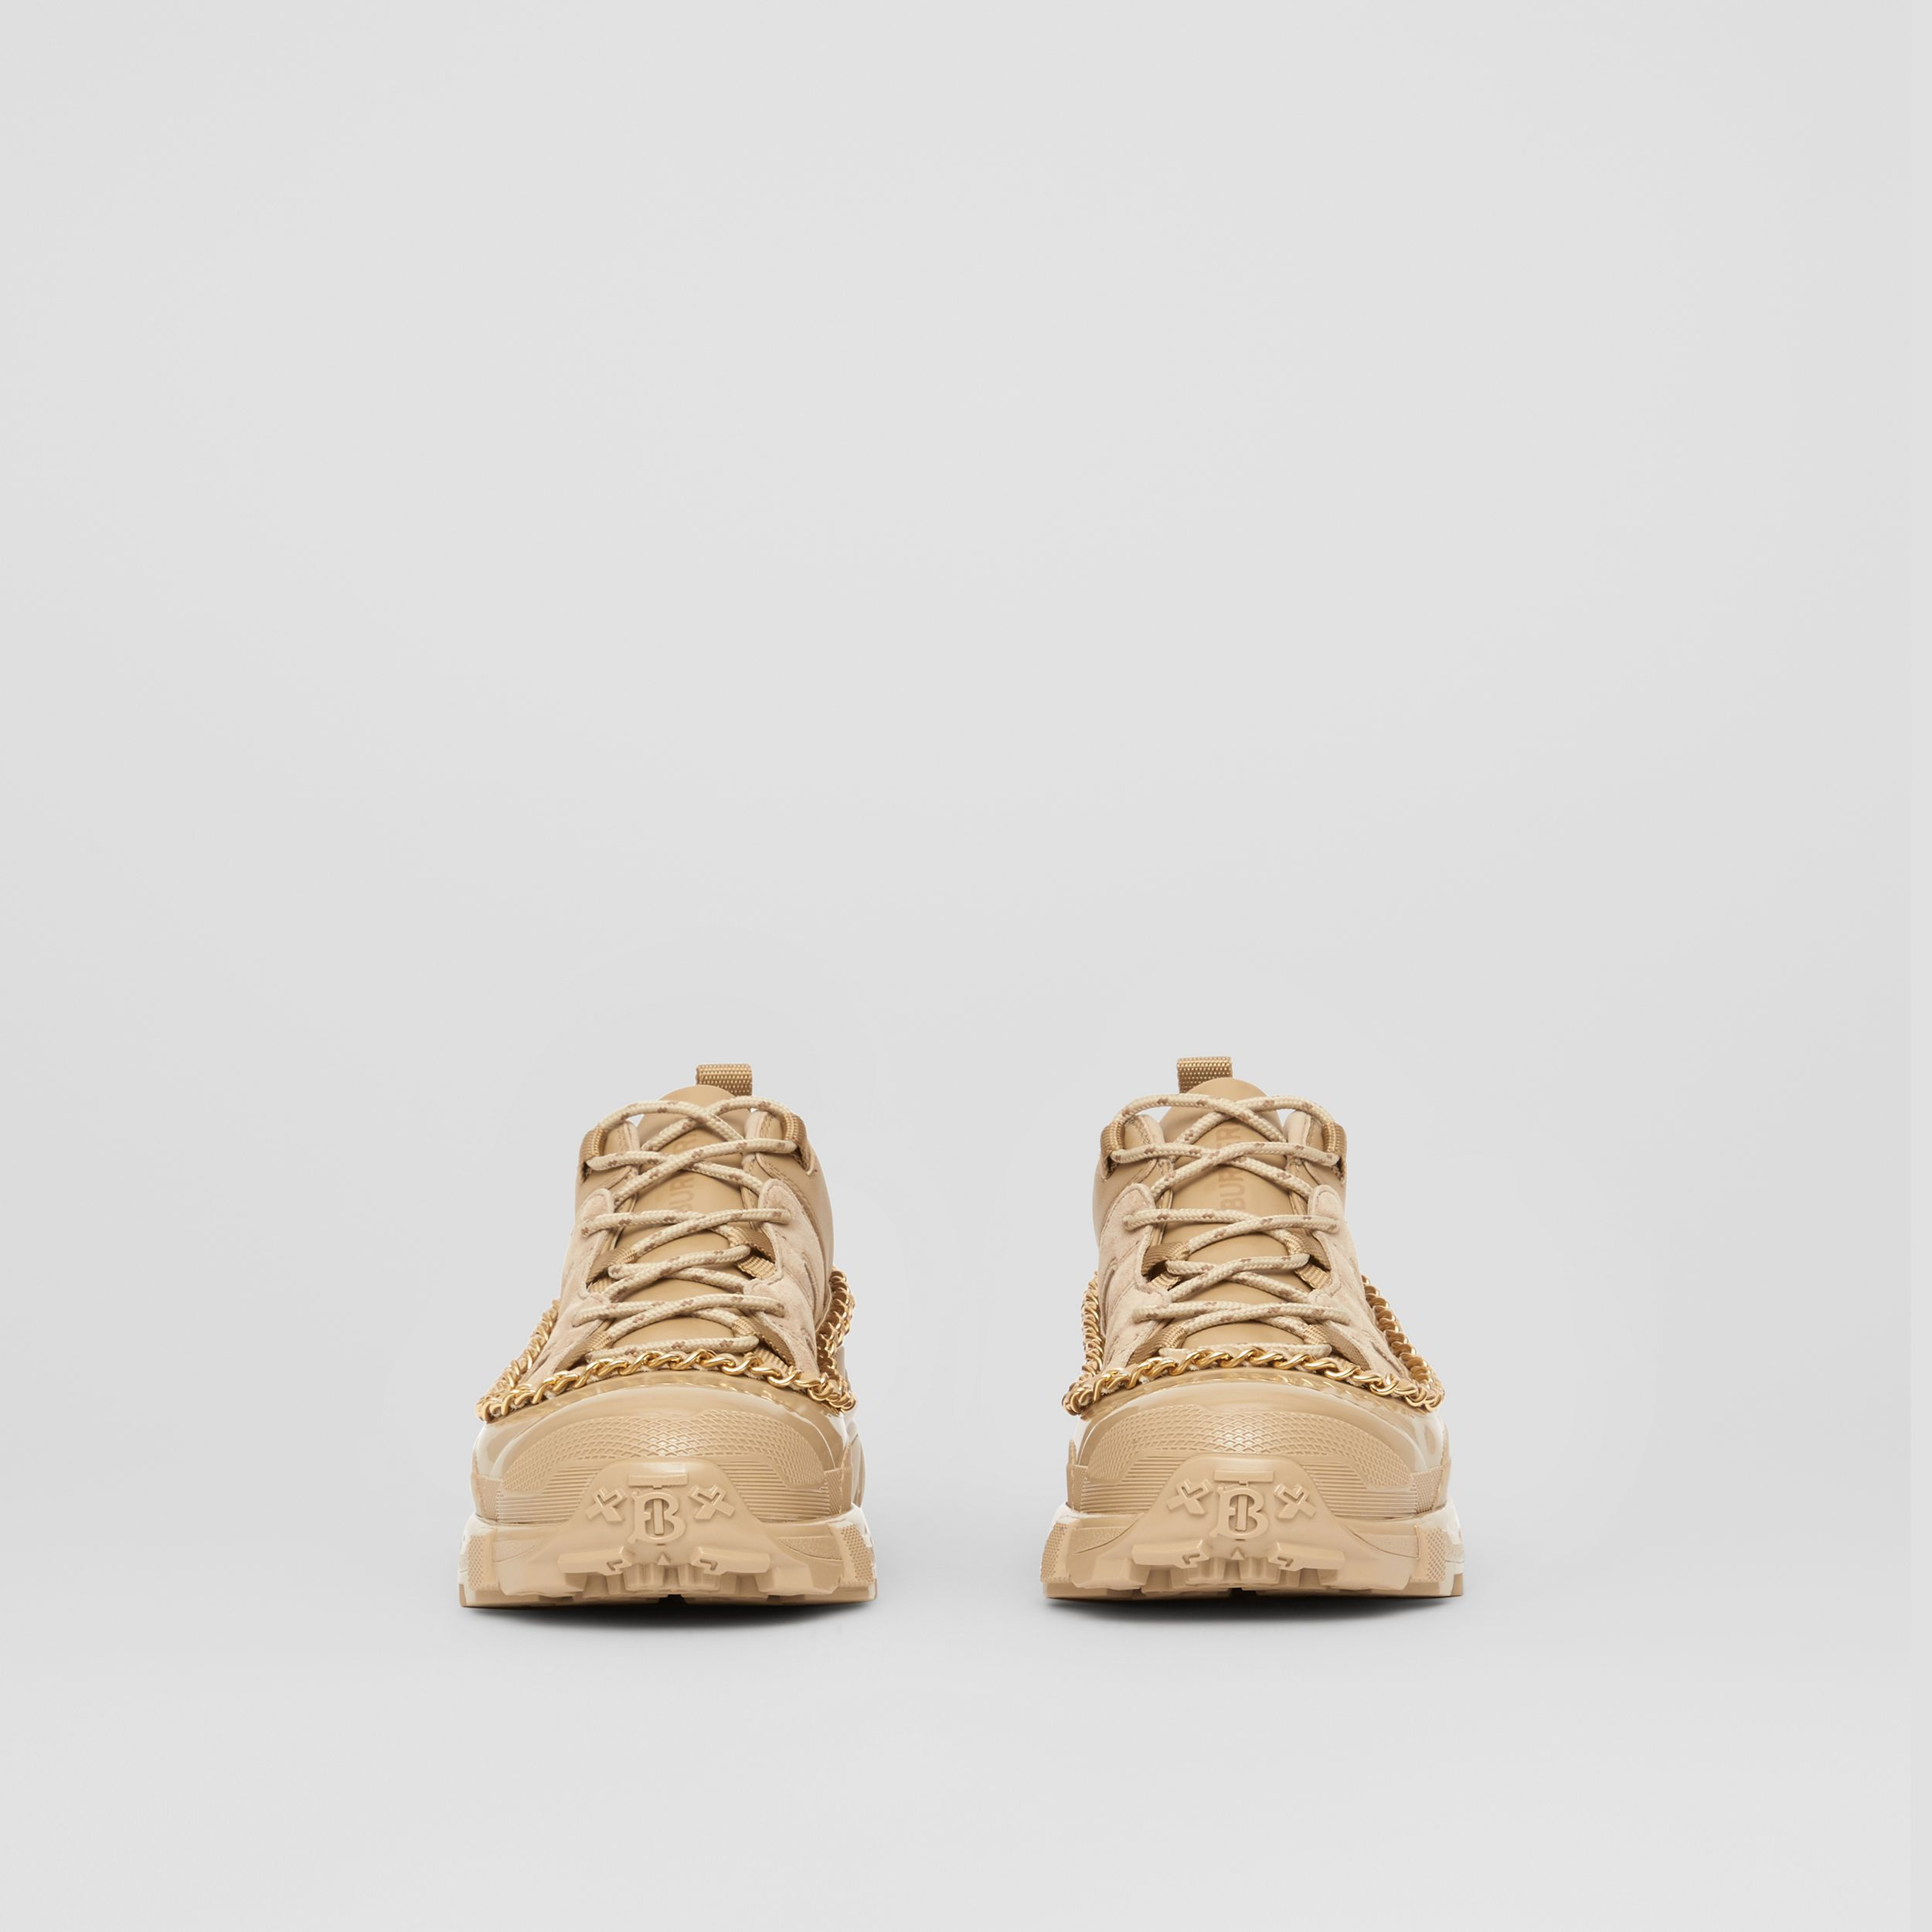 Chain Detail Suede and Leather Arthur Sneakers in Honey - Women | Burberry - 3